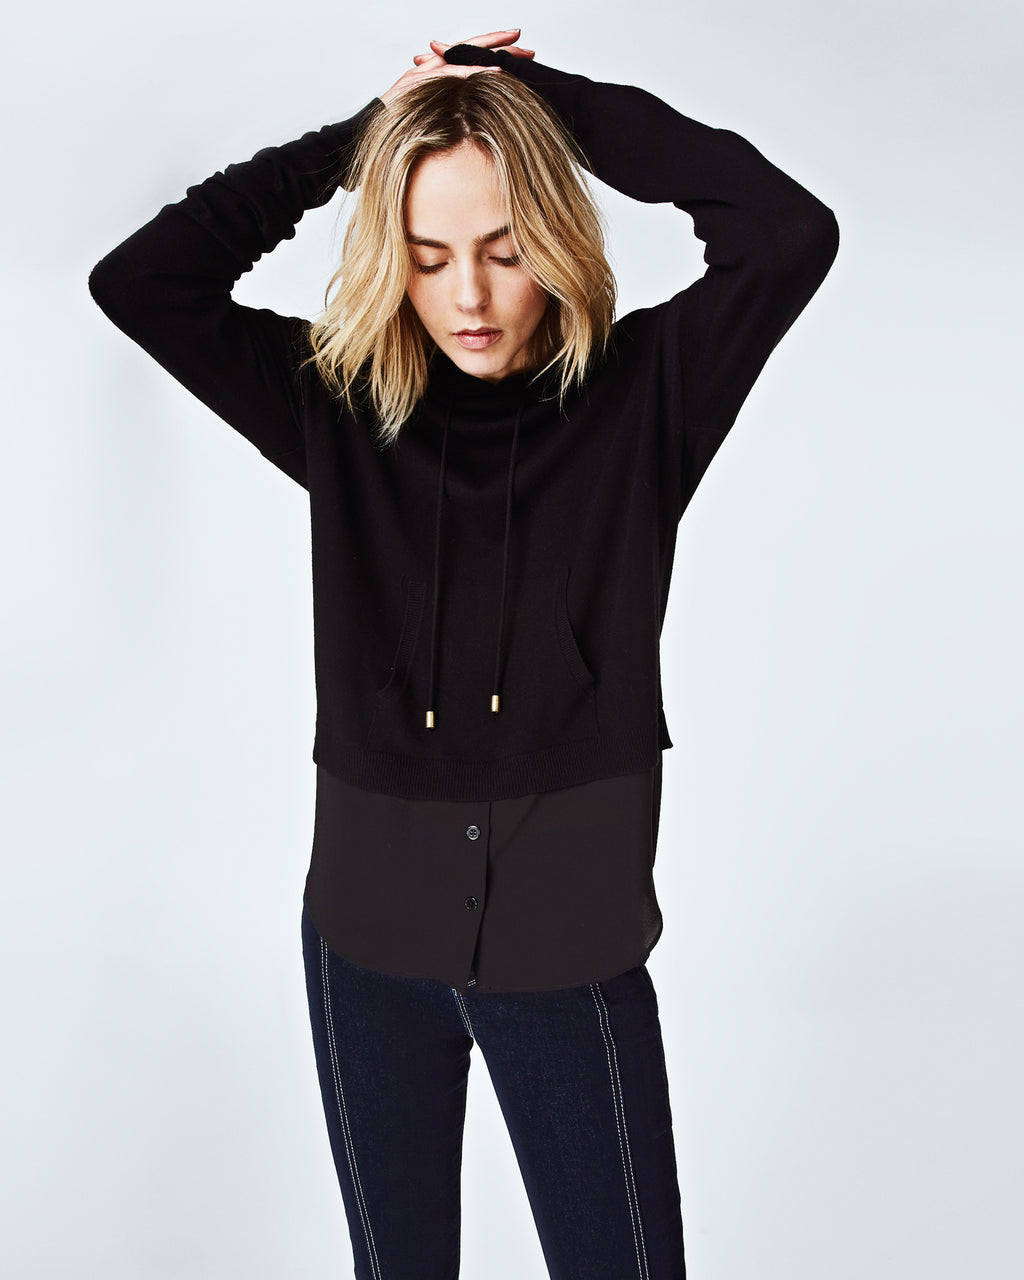 BK10253 - KNIT TO WOVEN HOODIE - tops - knitwear - In our signature knit to woven, this basic black hoodie is your new favorite piece. Pairs easily with jeans and sneakers for a cool and casual look. Finished with draw strings for a sporty vibeand unlined.